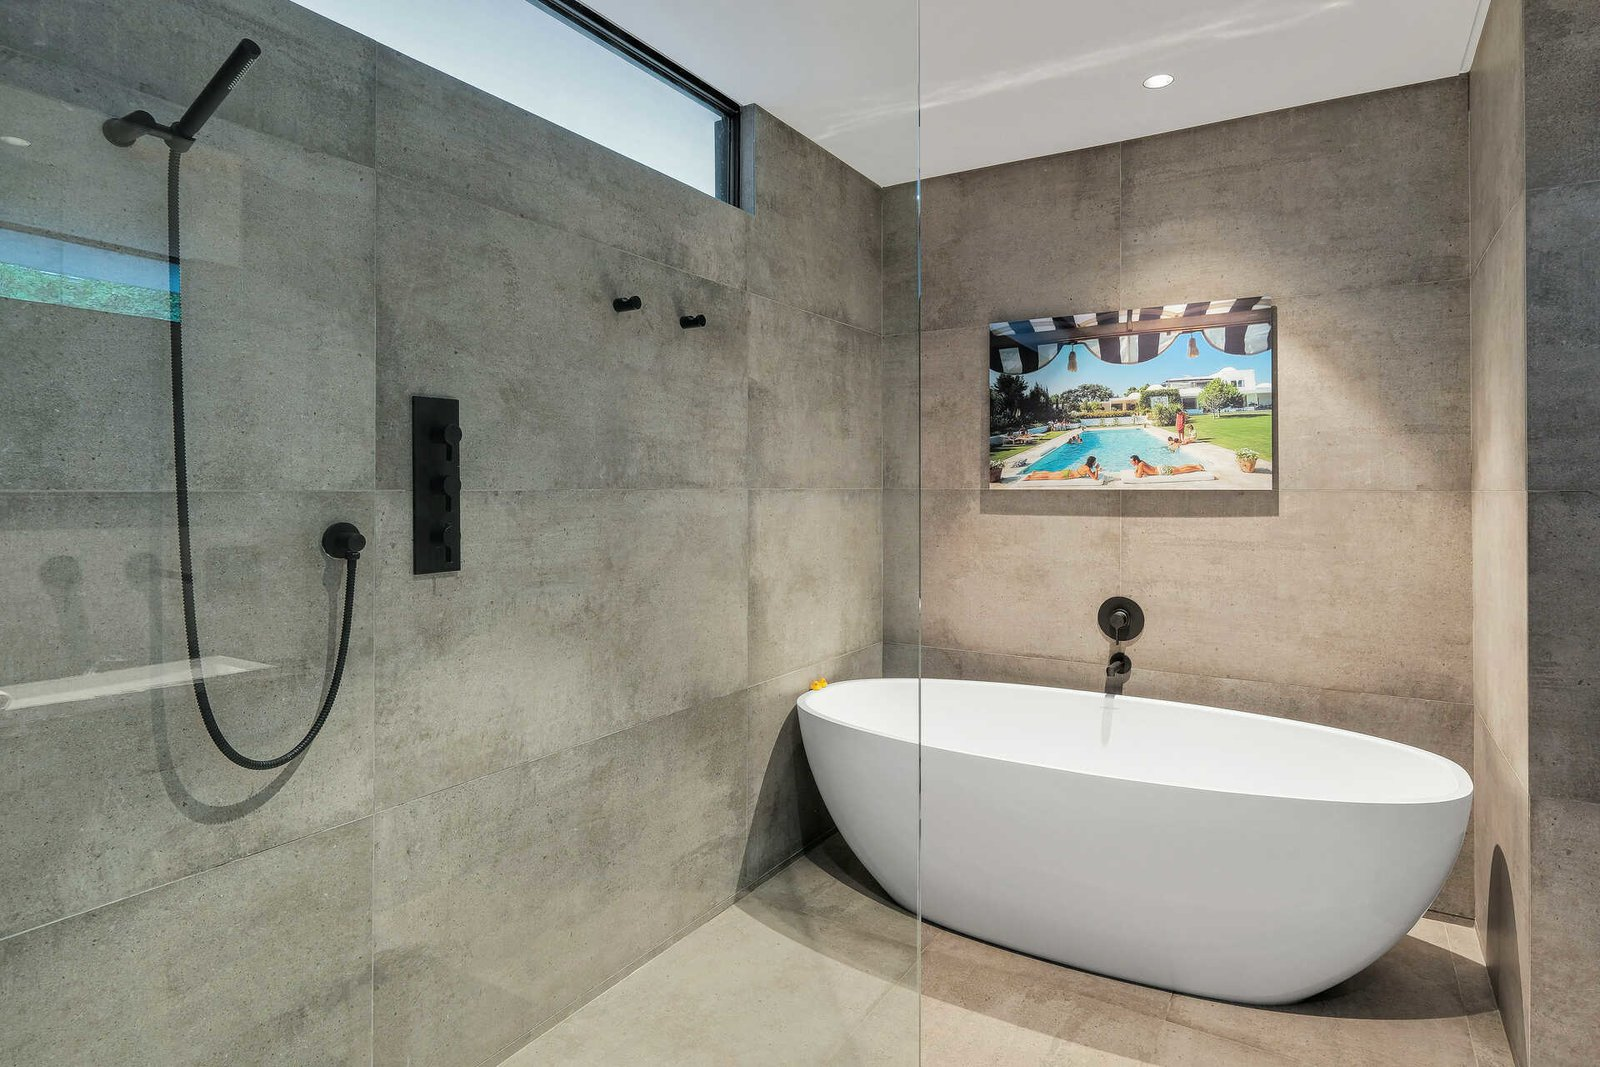 Bath Room, Stone Tile Wall, Soaking Tub, Concrete Floor, Recessed Lighting, Enclosed Shower, Freestanding Tub, and Concrete Wall  A Midcentury Modern Oasis in Bel Air